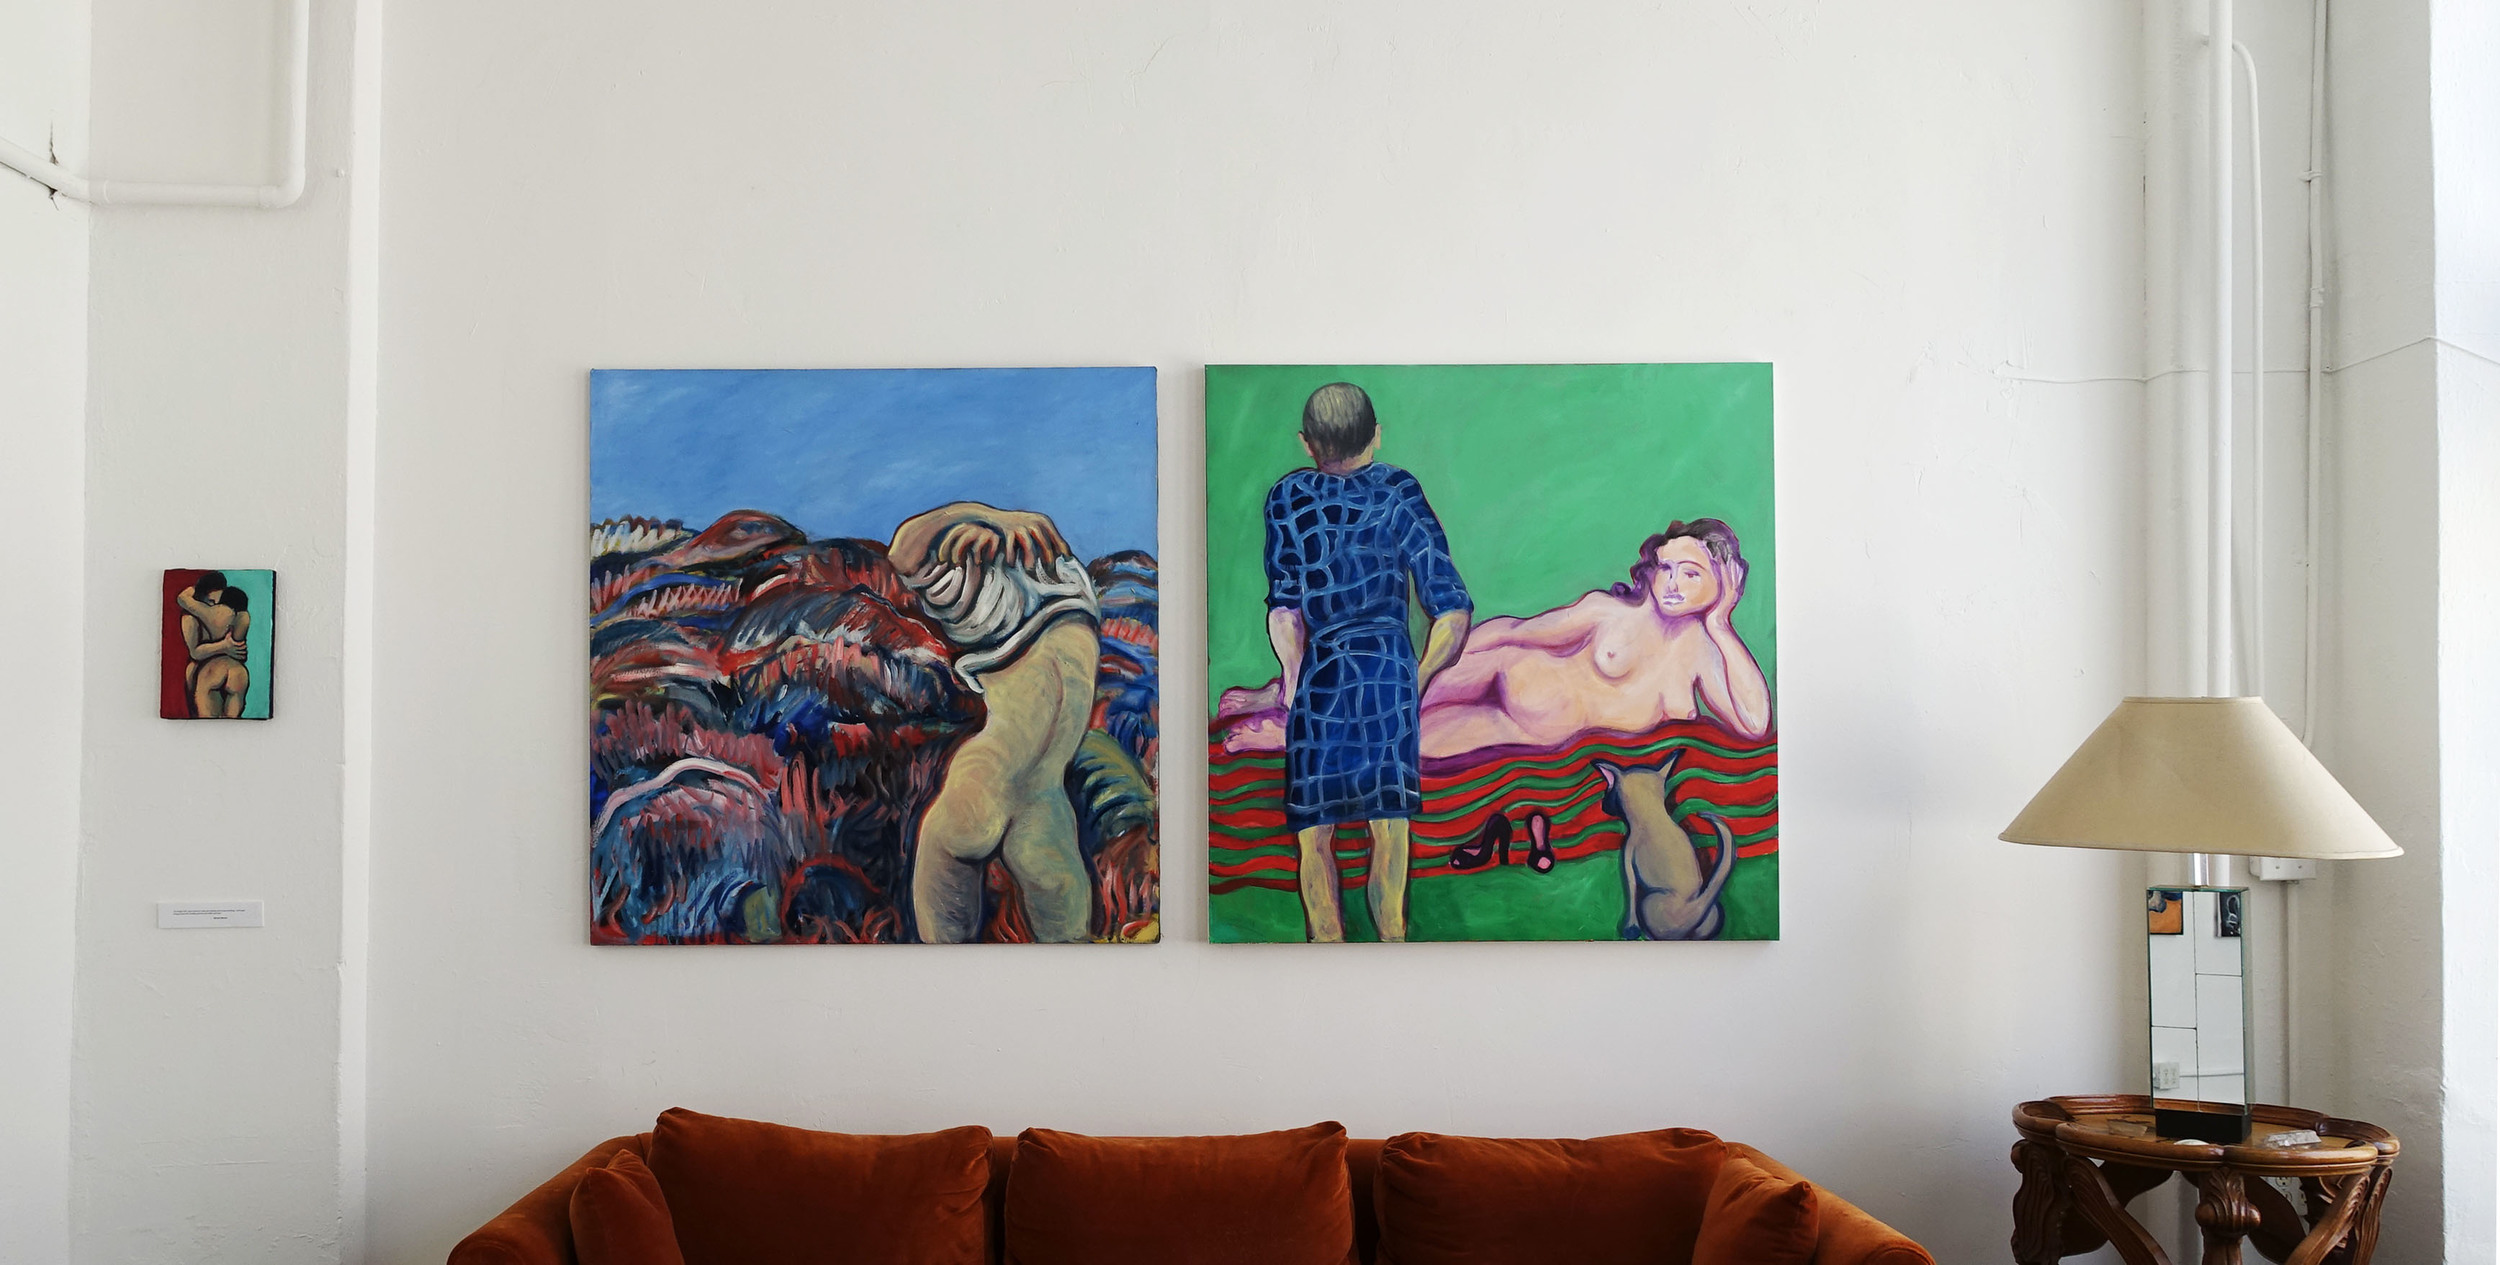 (center) (left) UNTITLED 48 x 48in Oil on canvas  (right) UNTITLED 48 x 48in Oil on canvas